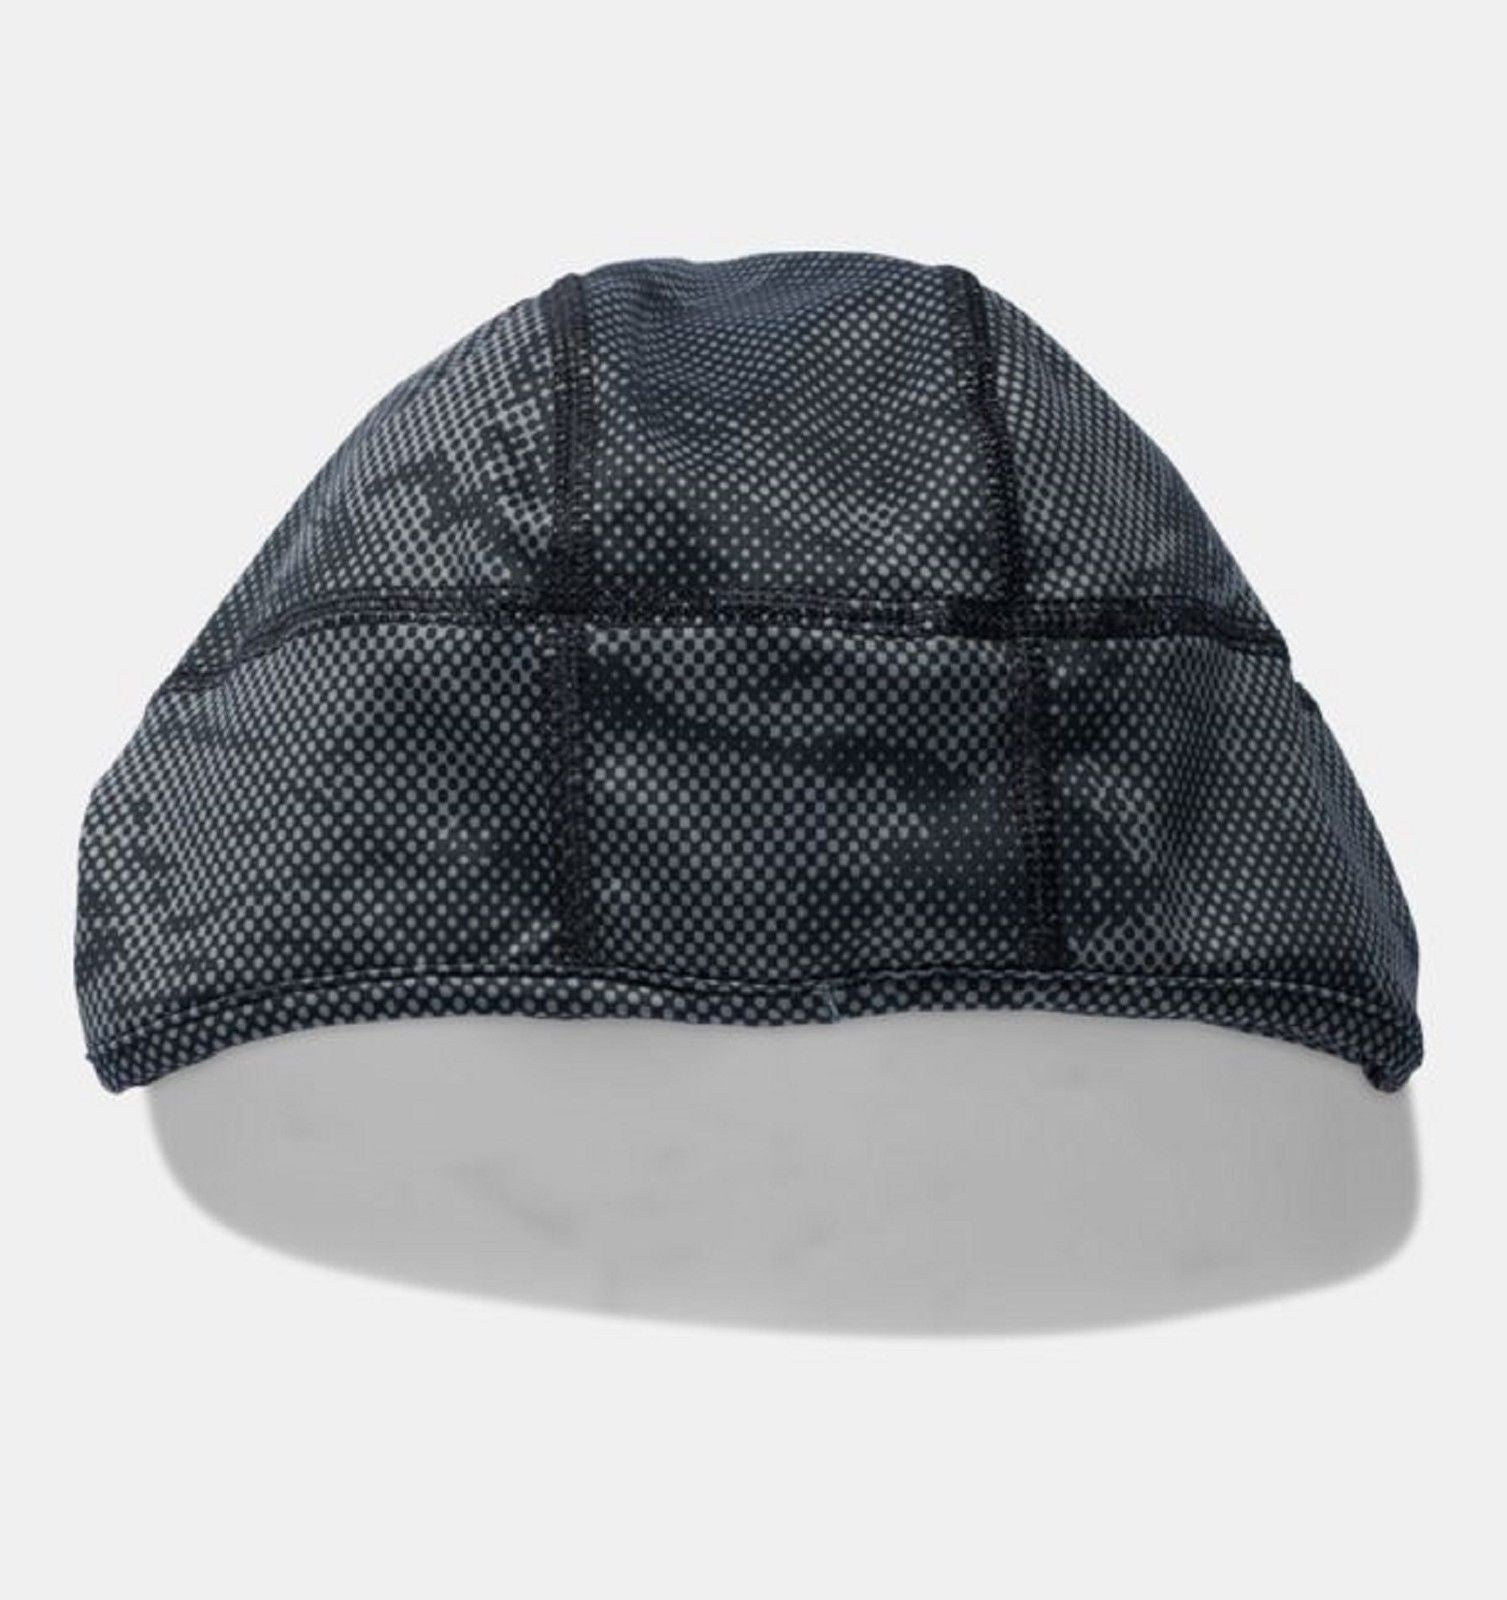 ... Under Armour Infrared ColdGear Beanie Hat - UA Tactical Winter Skull Cap  Beanies ... 6263ad2f85f